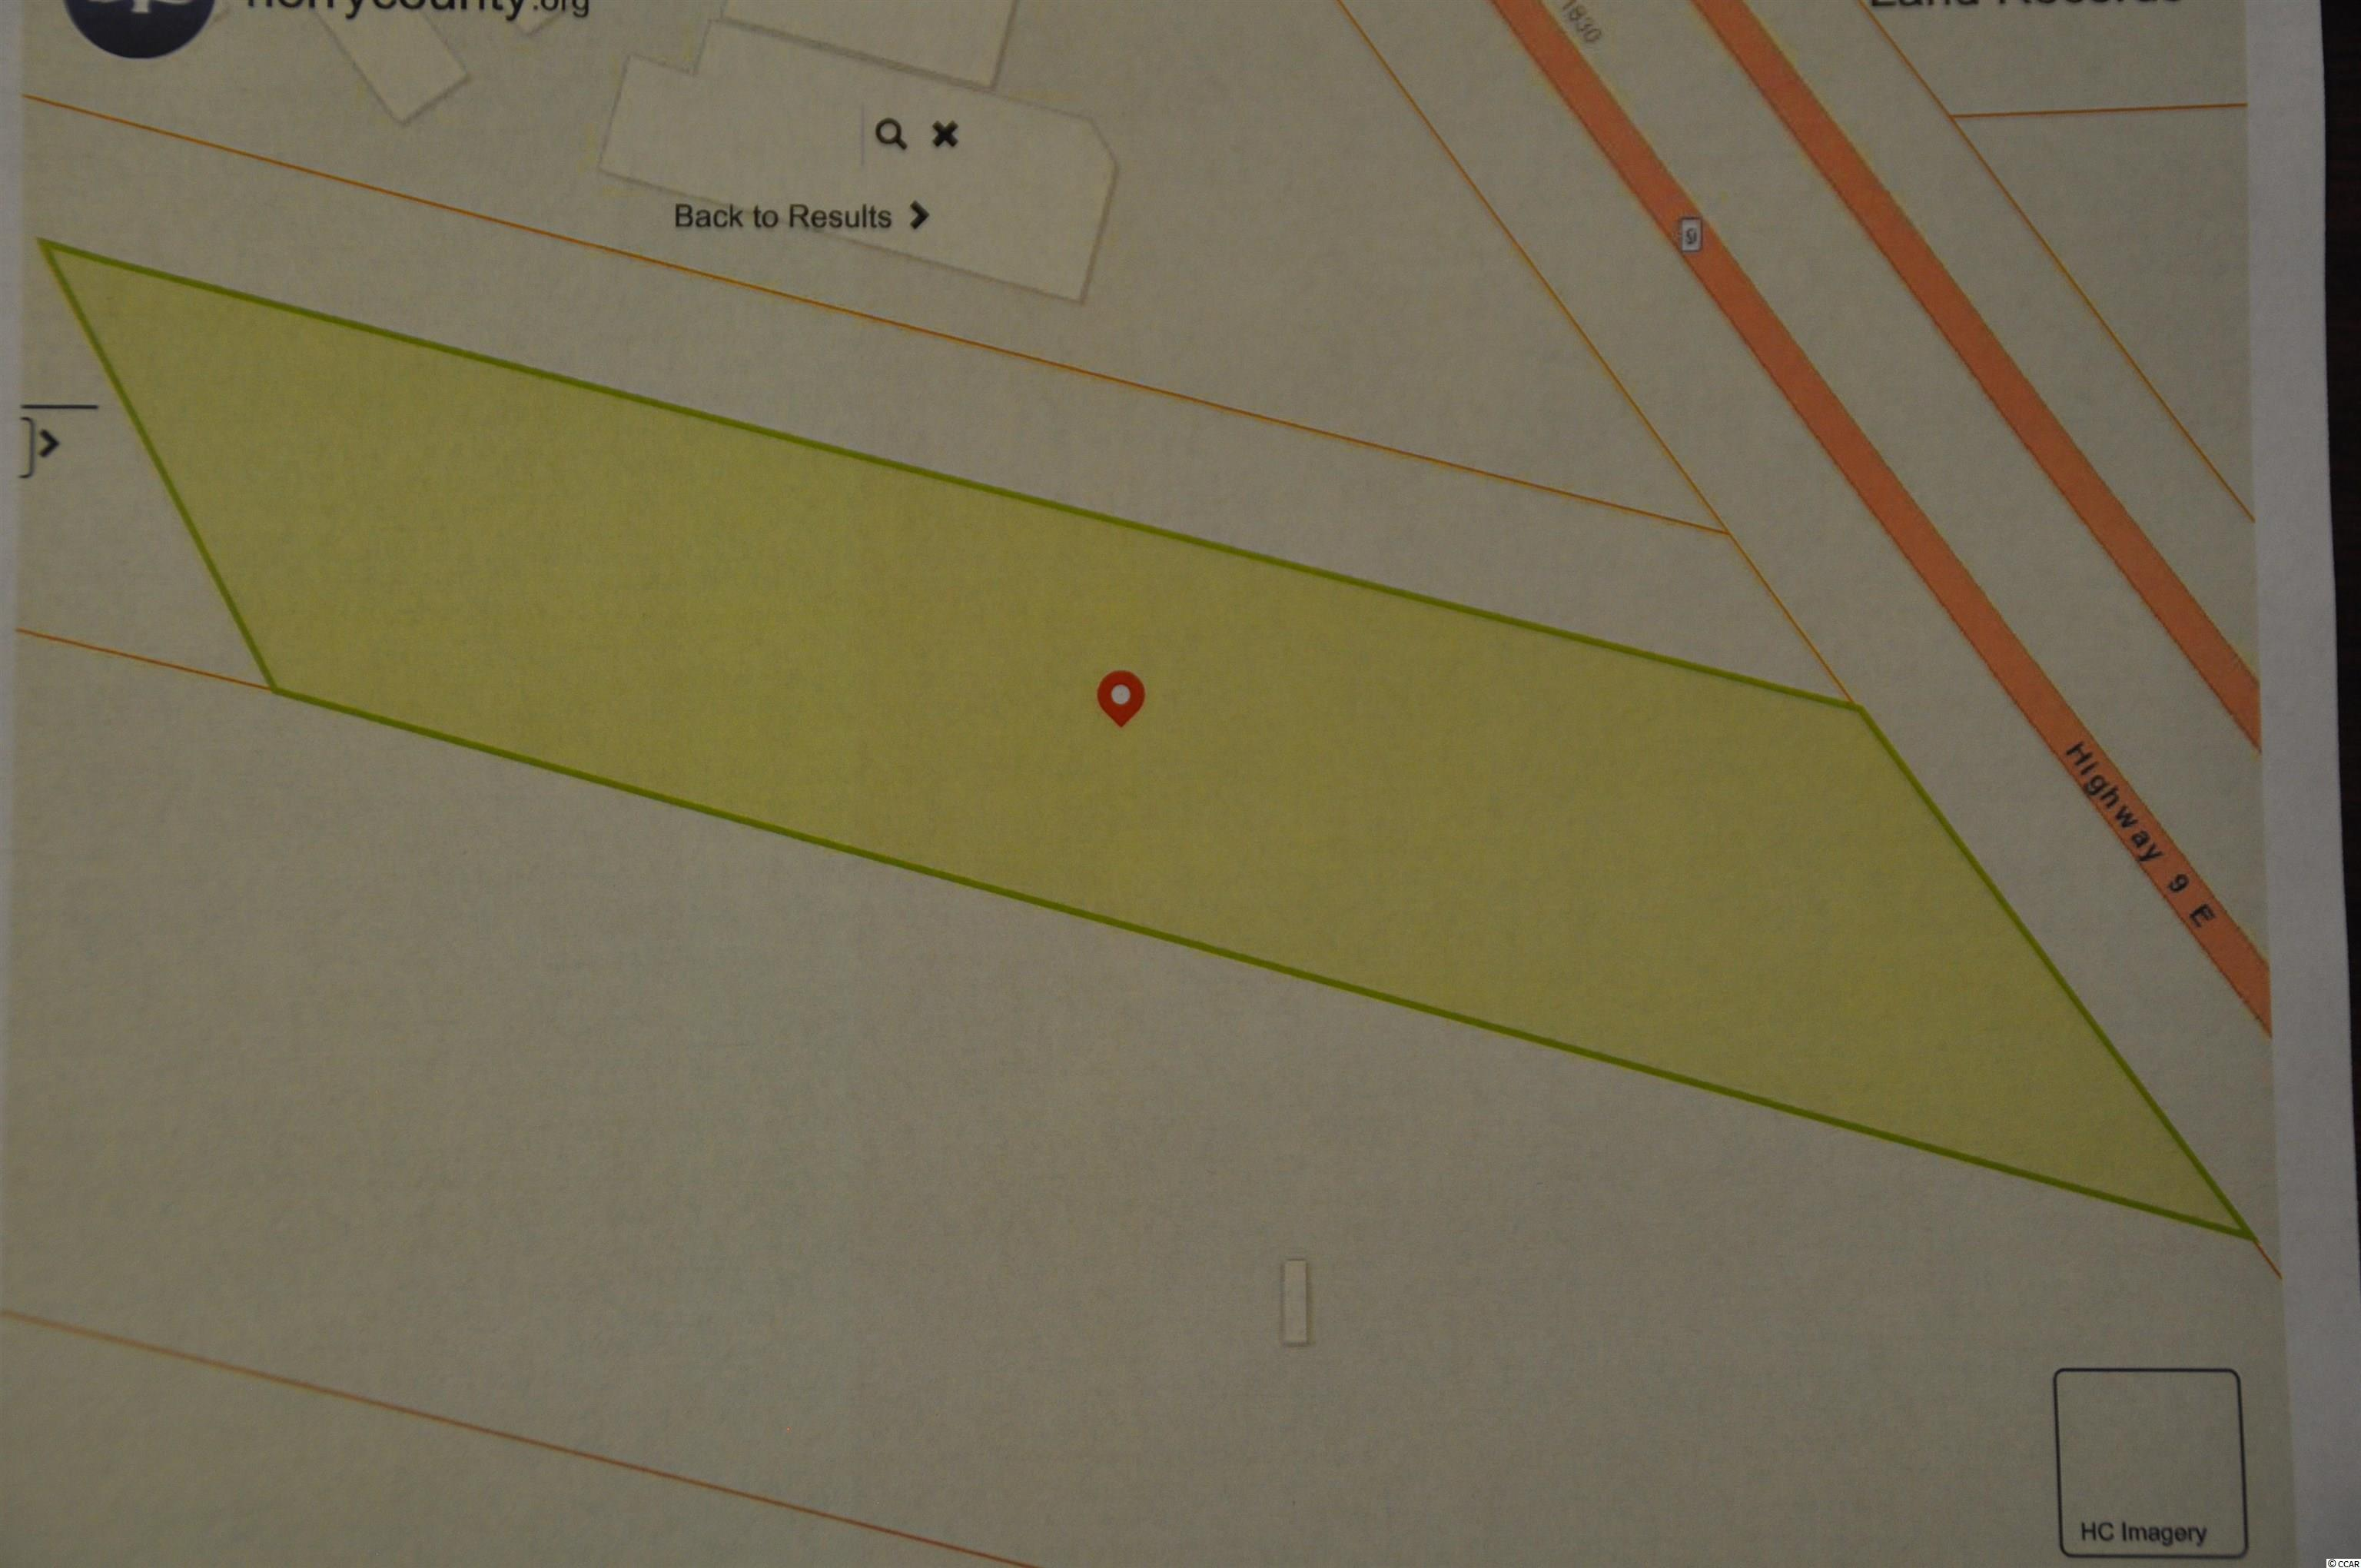 Great commercial opportunity.  2.2 ac lot on Hwy 9.  High traffic count.  Growing area.  Just minutes to the beach.  Great access to Hwy 31 & Hwy 17.